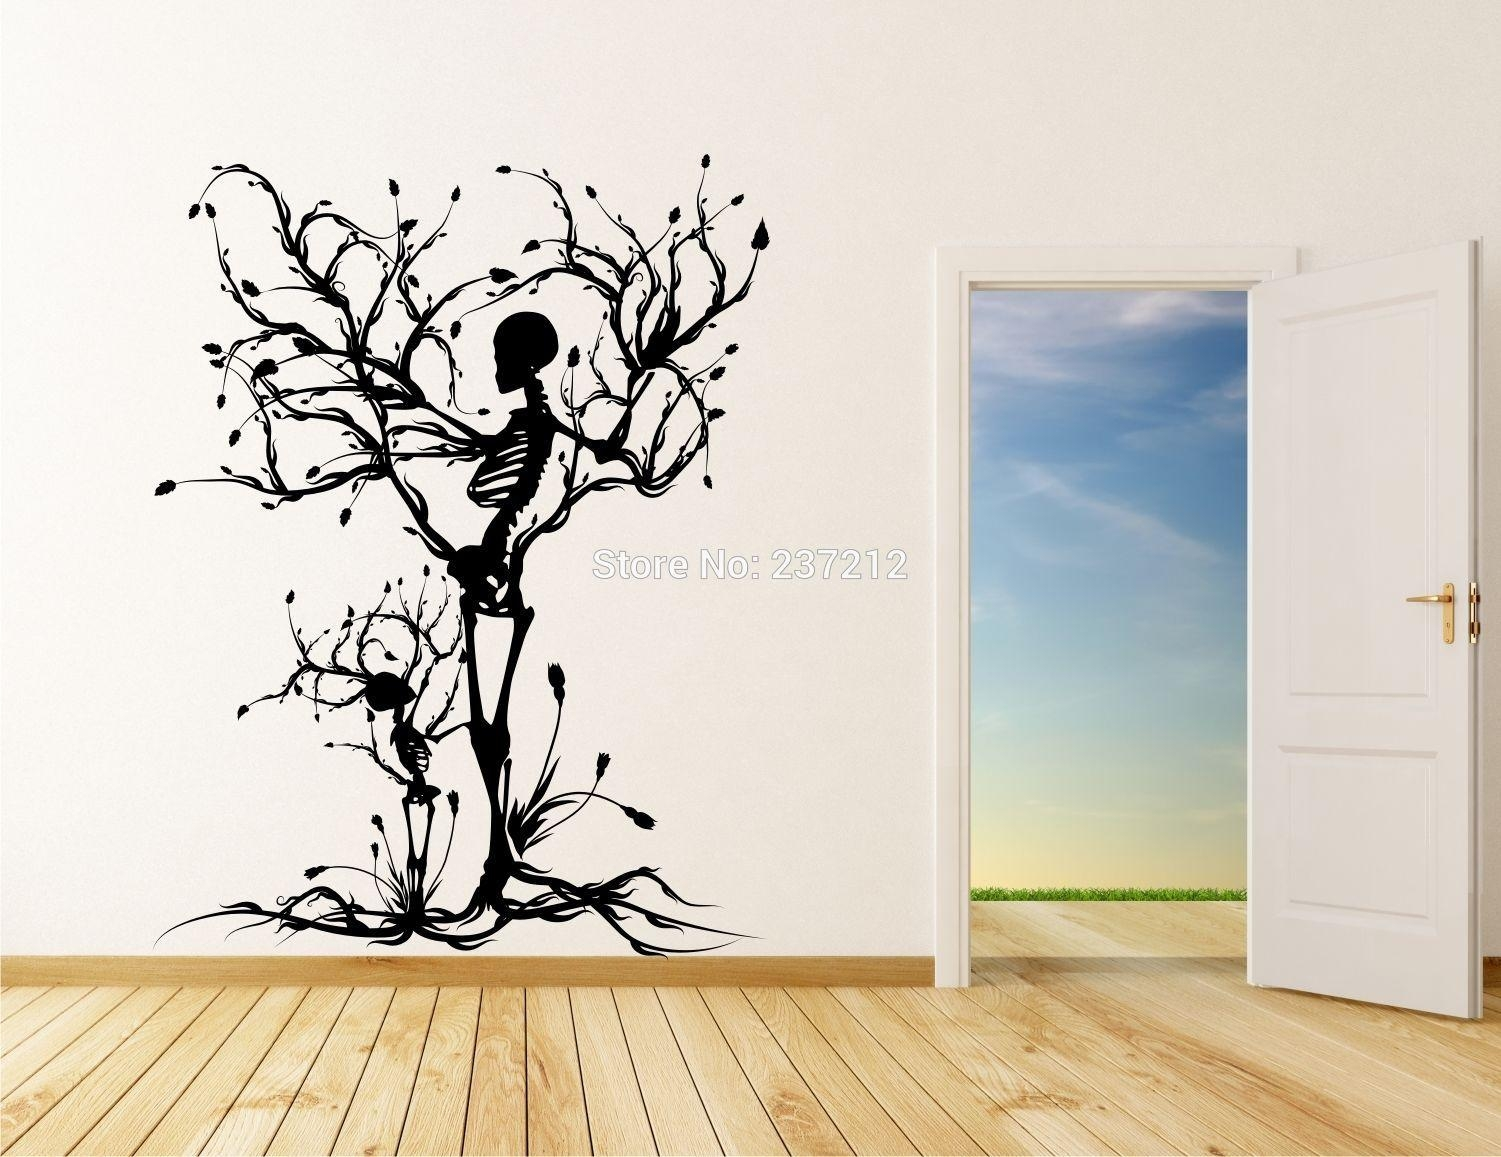 Wall Art Designs: Vinyl Wall Art Decals Popular Vinyl Tree Wall Regarding Vinyl Wall Art Tree (Image 13 of 20)